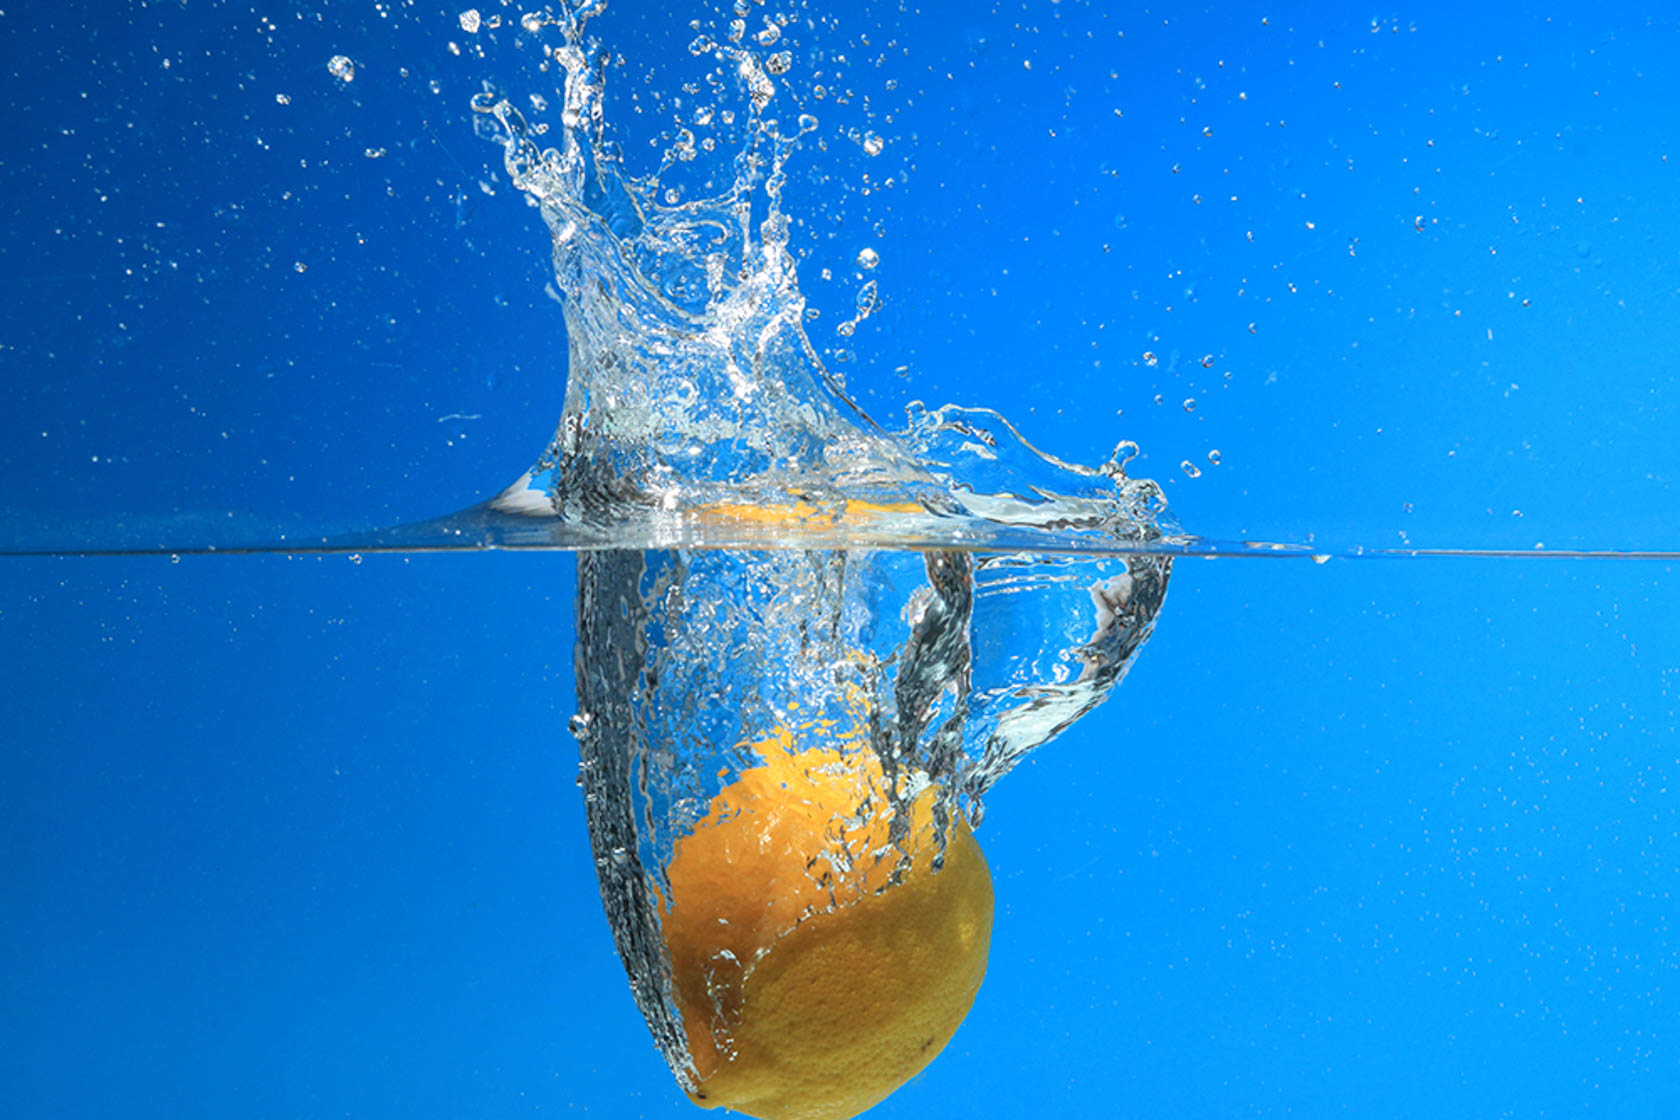 Lemon dropping into water taken with Canon Speedlite 430EX III flash